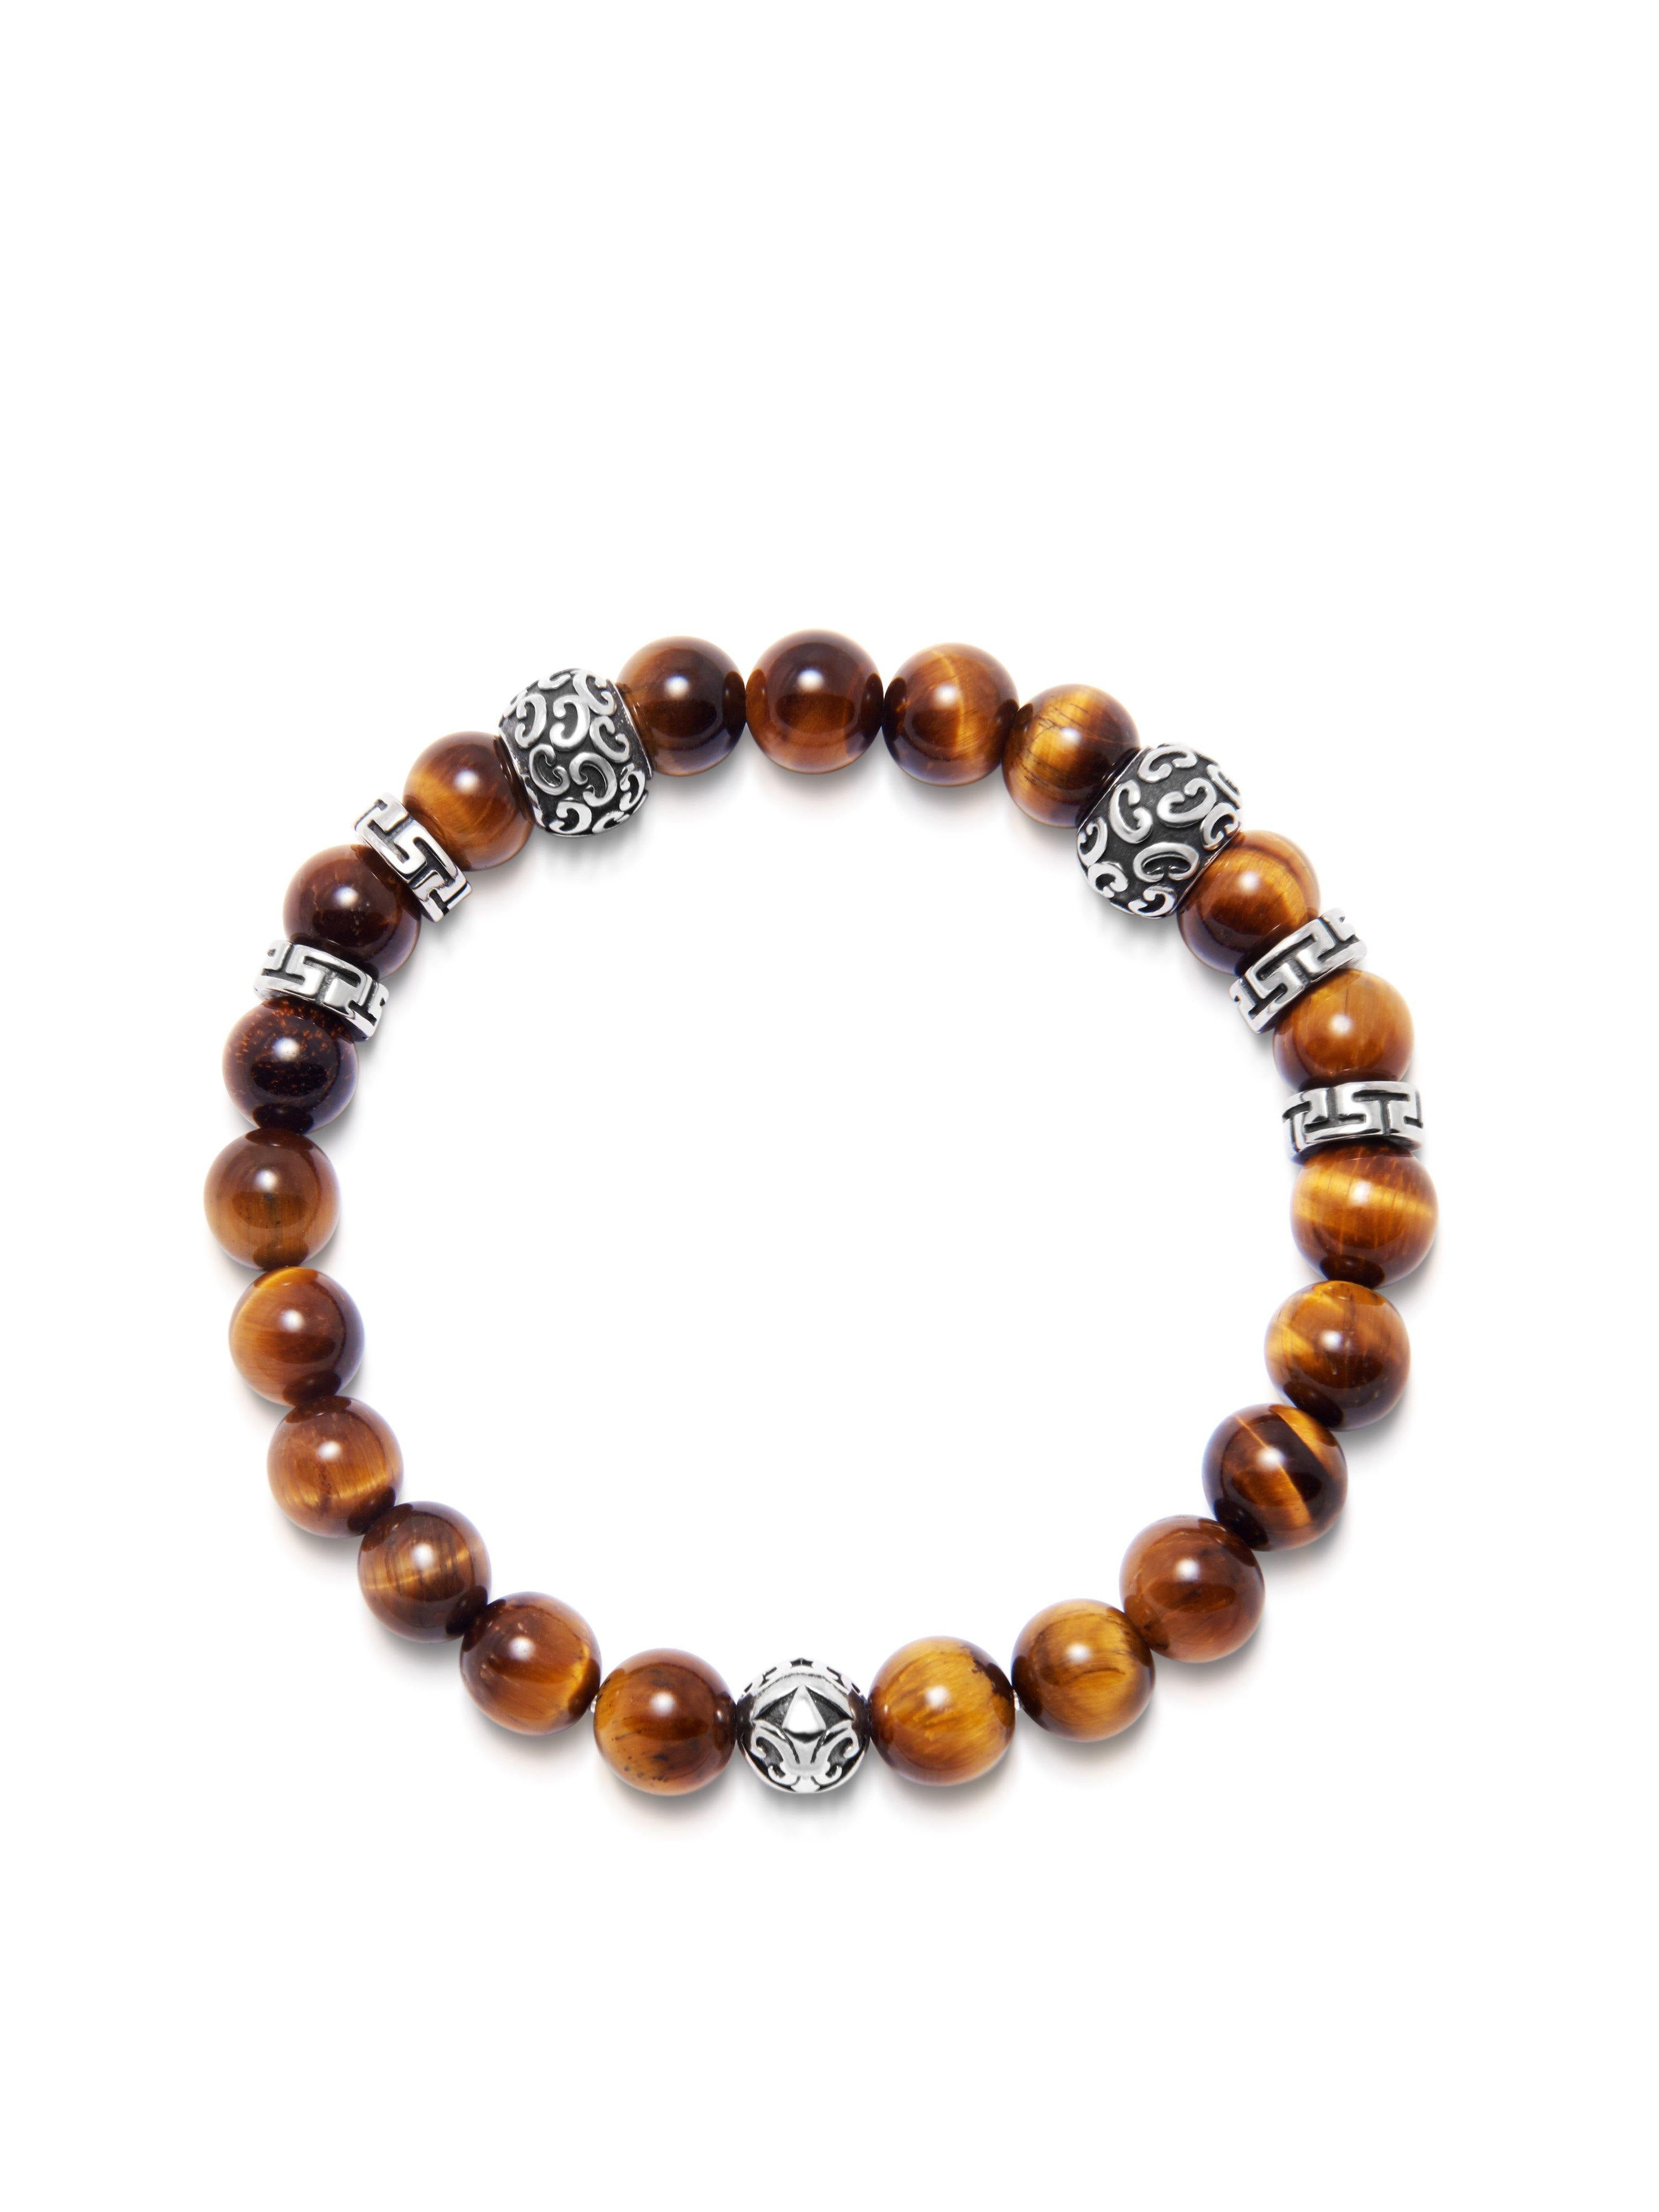 Men's Wristband with 8MM Tiger Eye and Silver